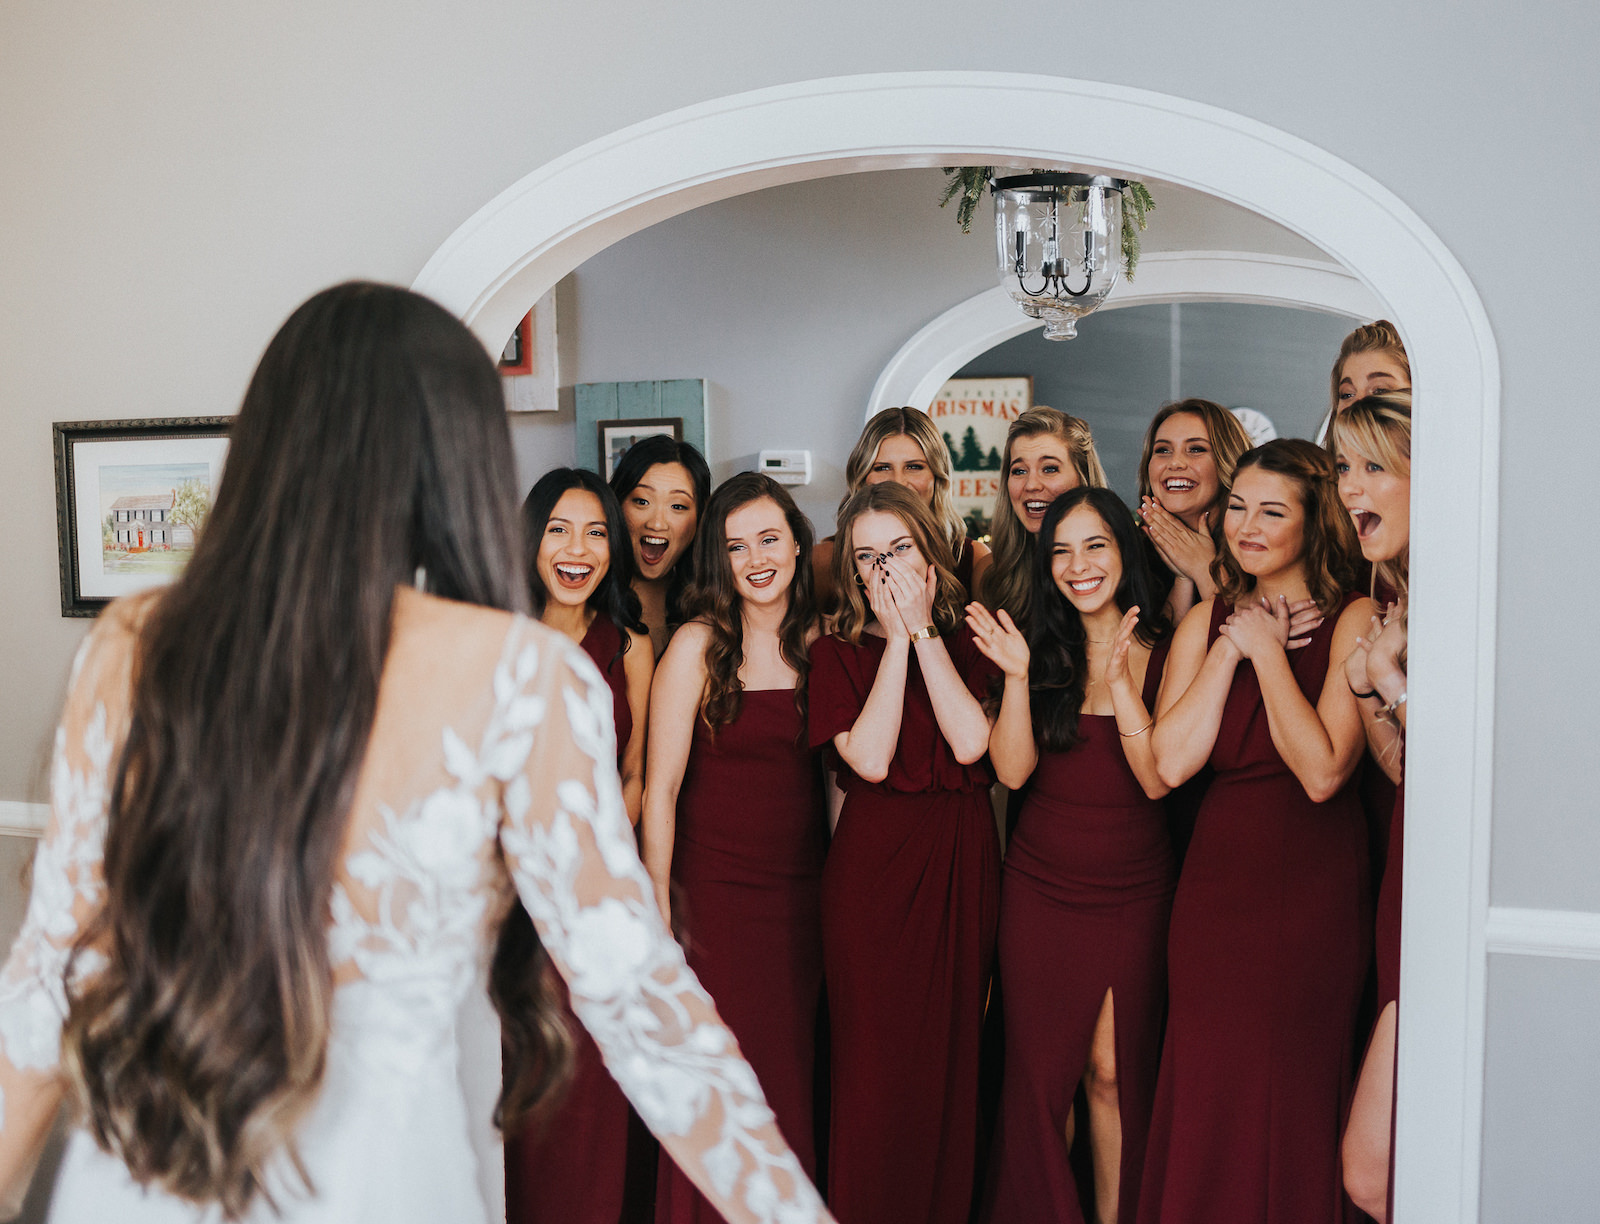 Tampa Bay Bride and Bridesmaids First Look, Florida Bride Wearing BHLDN Long Sleeve Wedding Dress, Bridesmaids in Long Mismatched Wine Burgundy Dresses From BHLDN